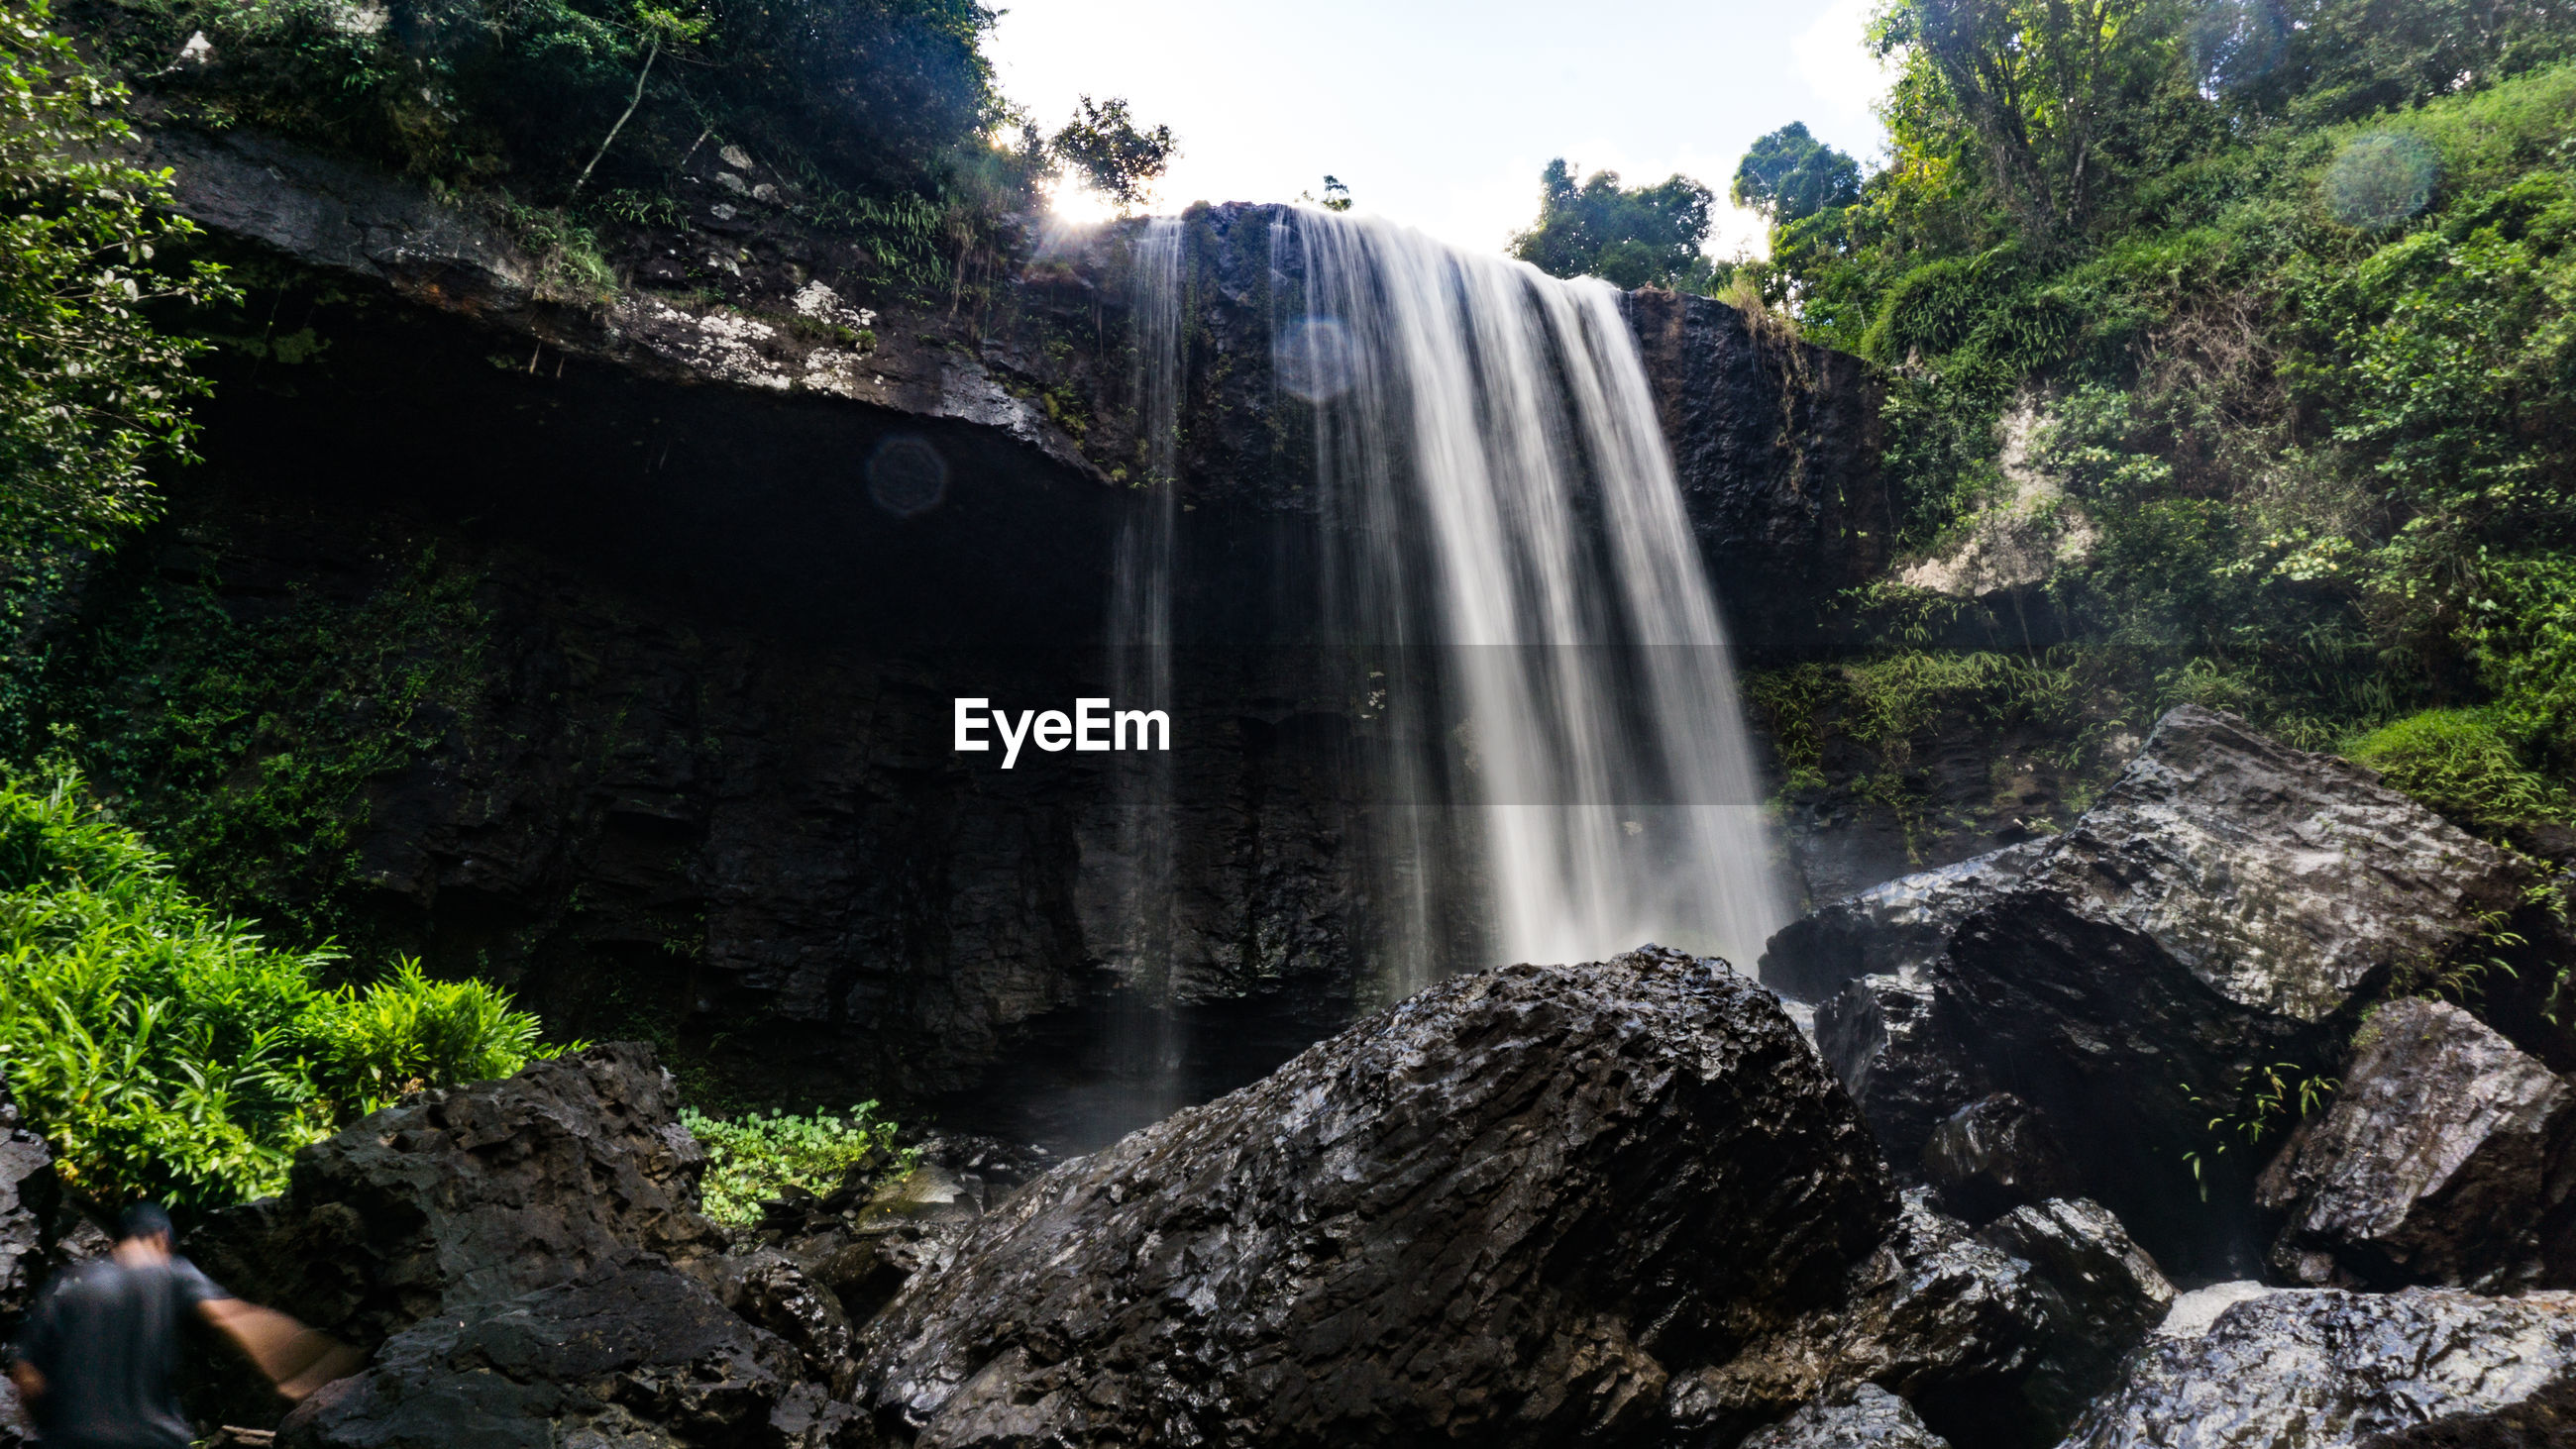 LOW ANGLE VIEW OF WATERFALL IN FOREST AGAINST SKY